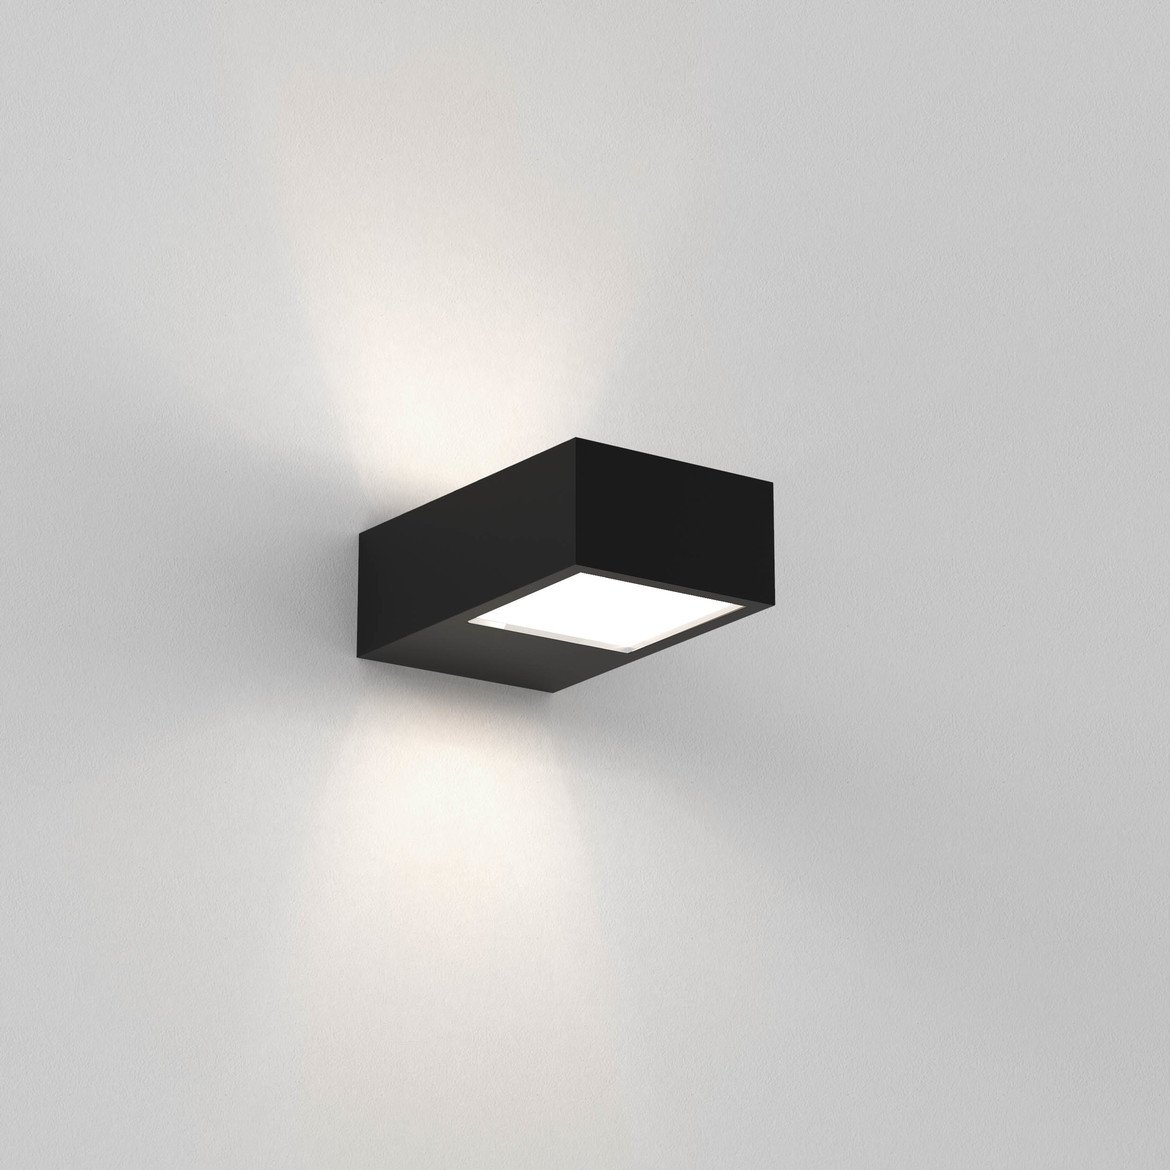 Astro Lighting 1151004 Kappa LED Black Wall Light